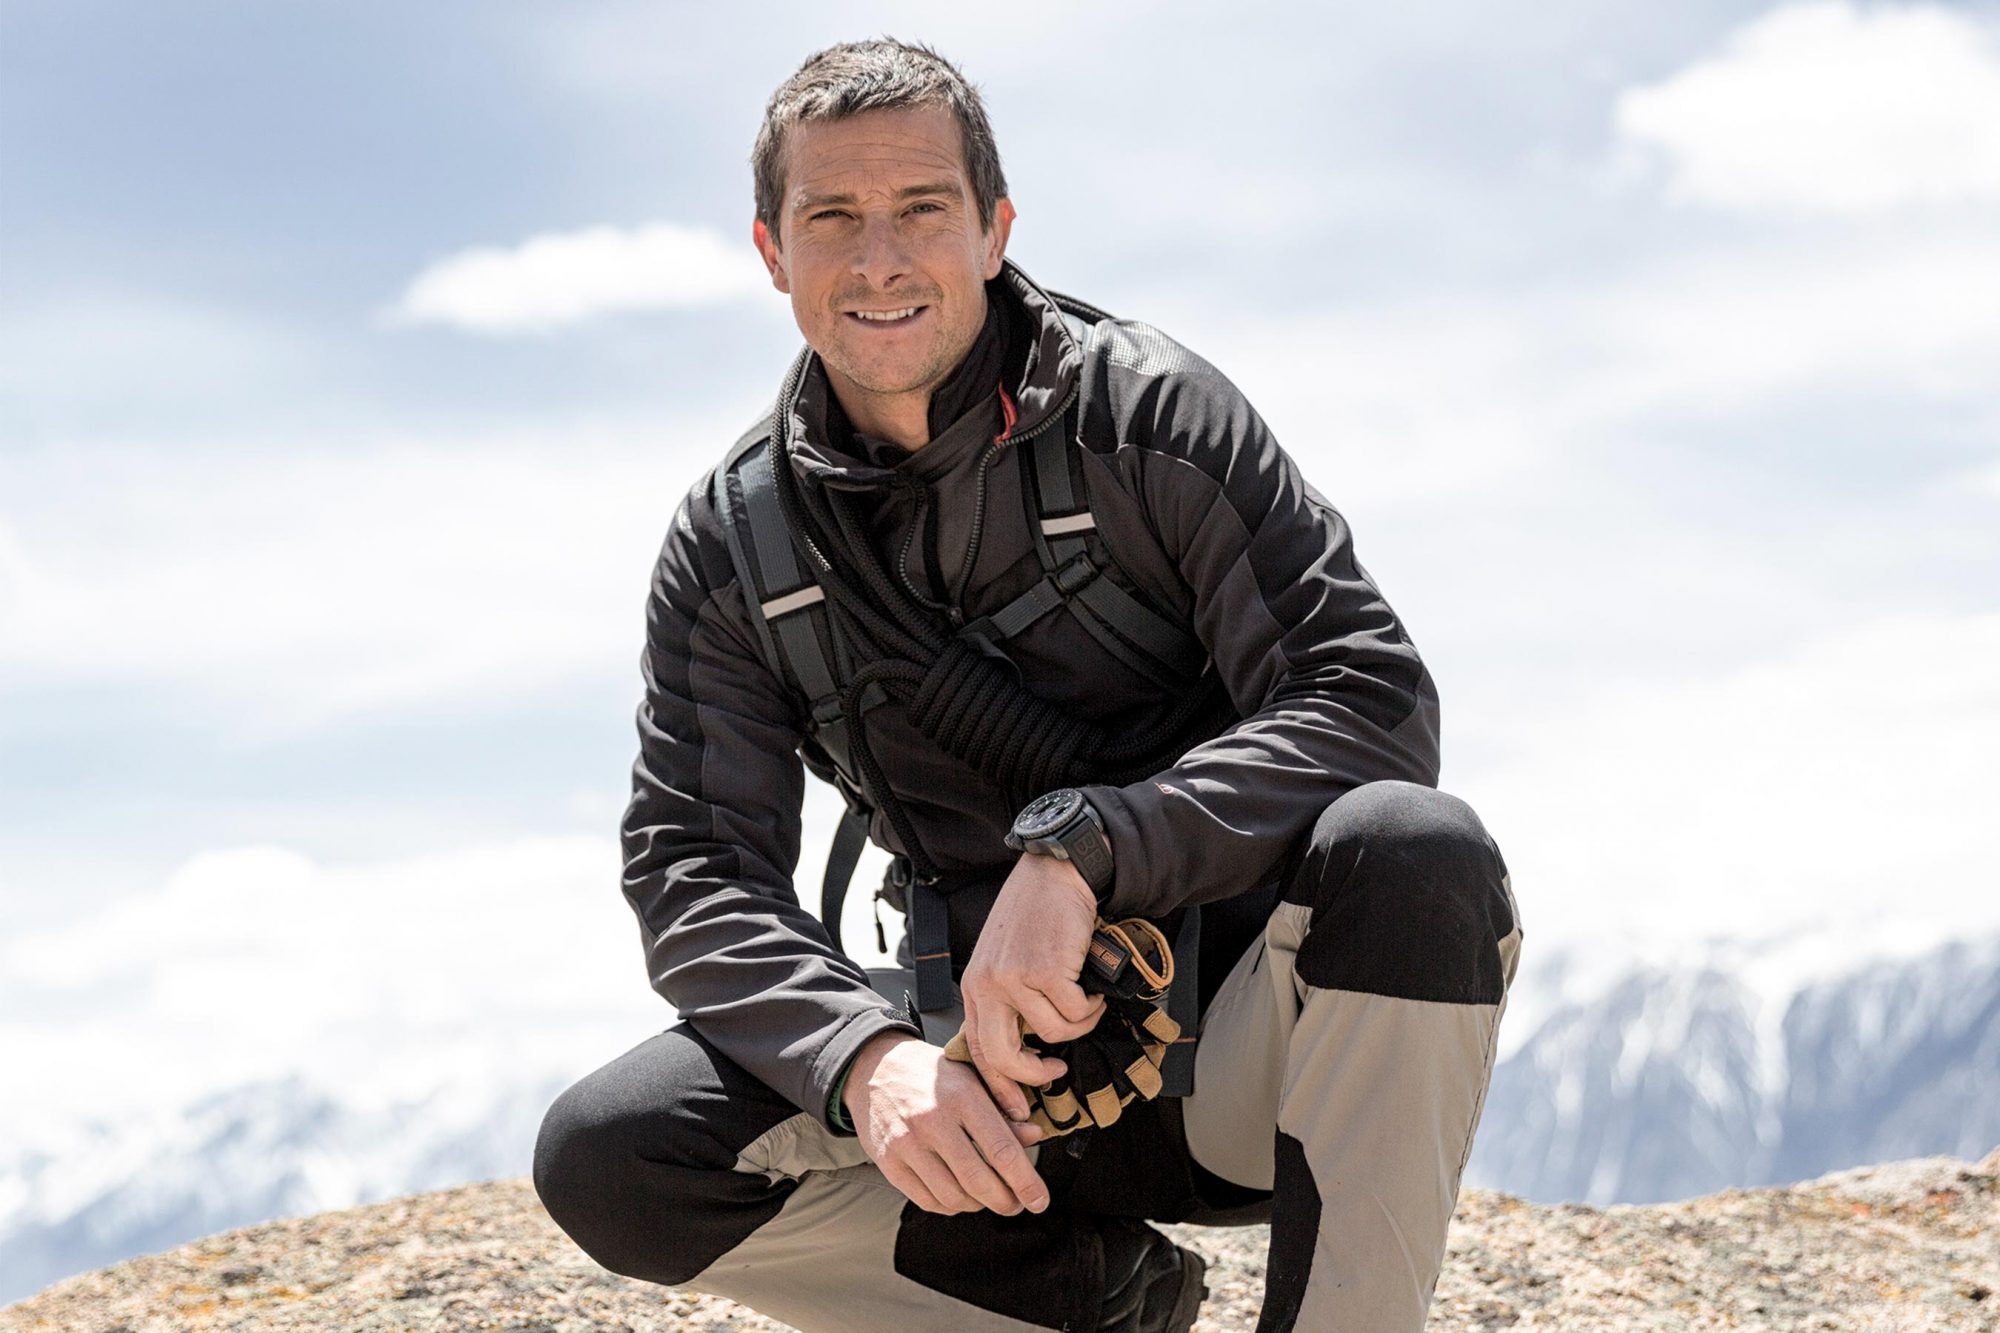 Running Wild with Bear Grylls - Season 3